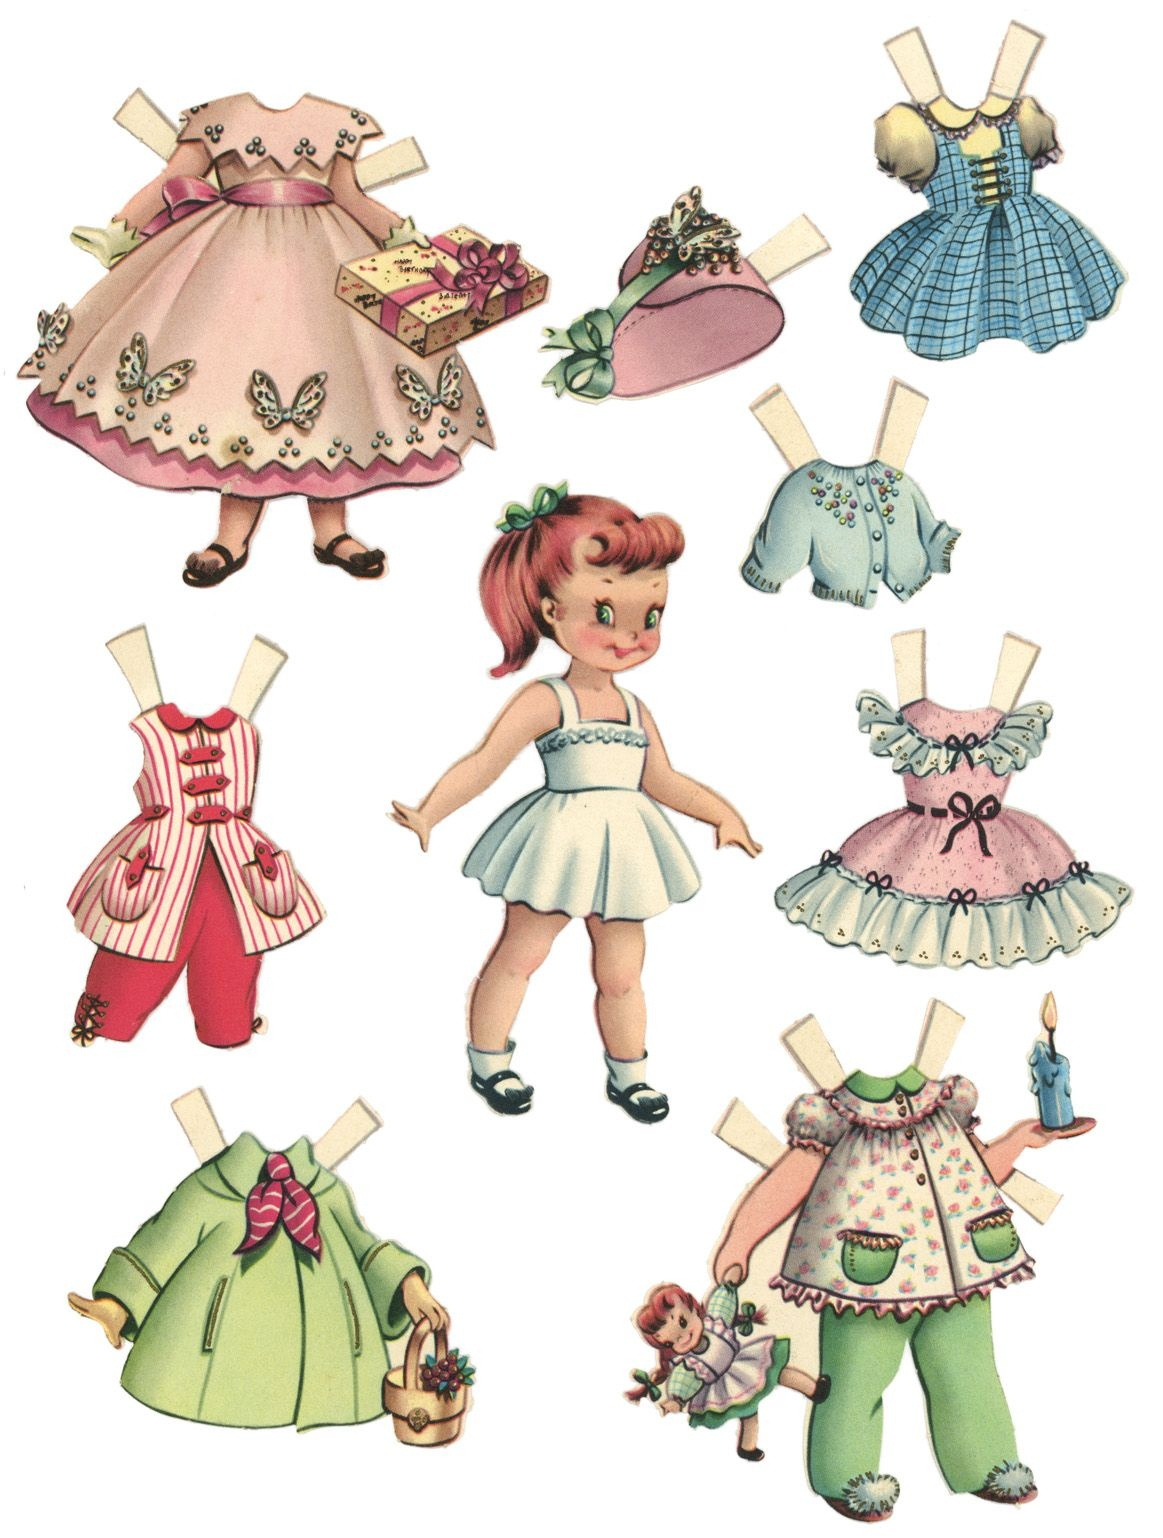 10 Free Printable Paper Dolls | Paper Dolls | Paper Dolls Printable - Free Printable Paper Dolls From Around The World